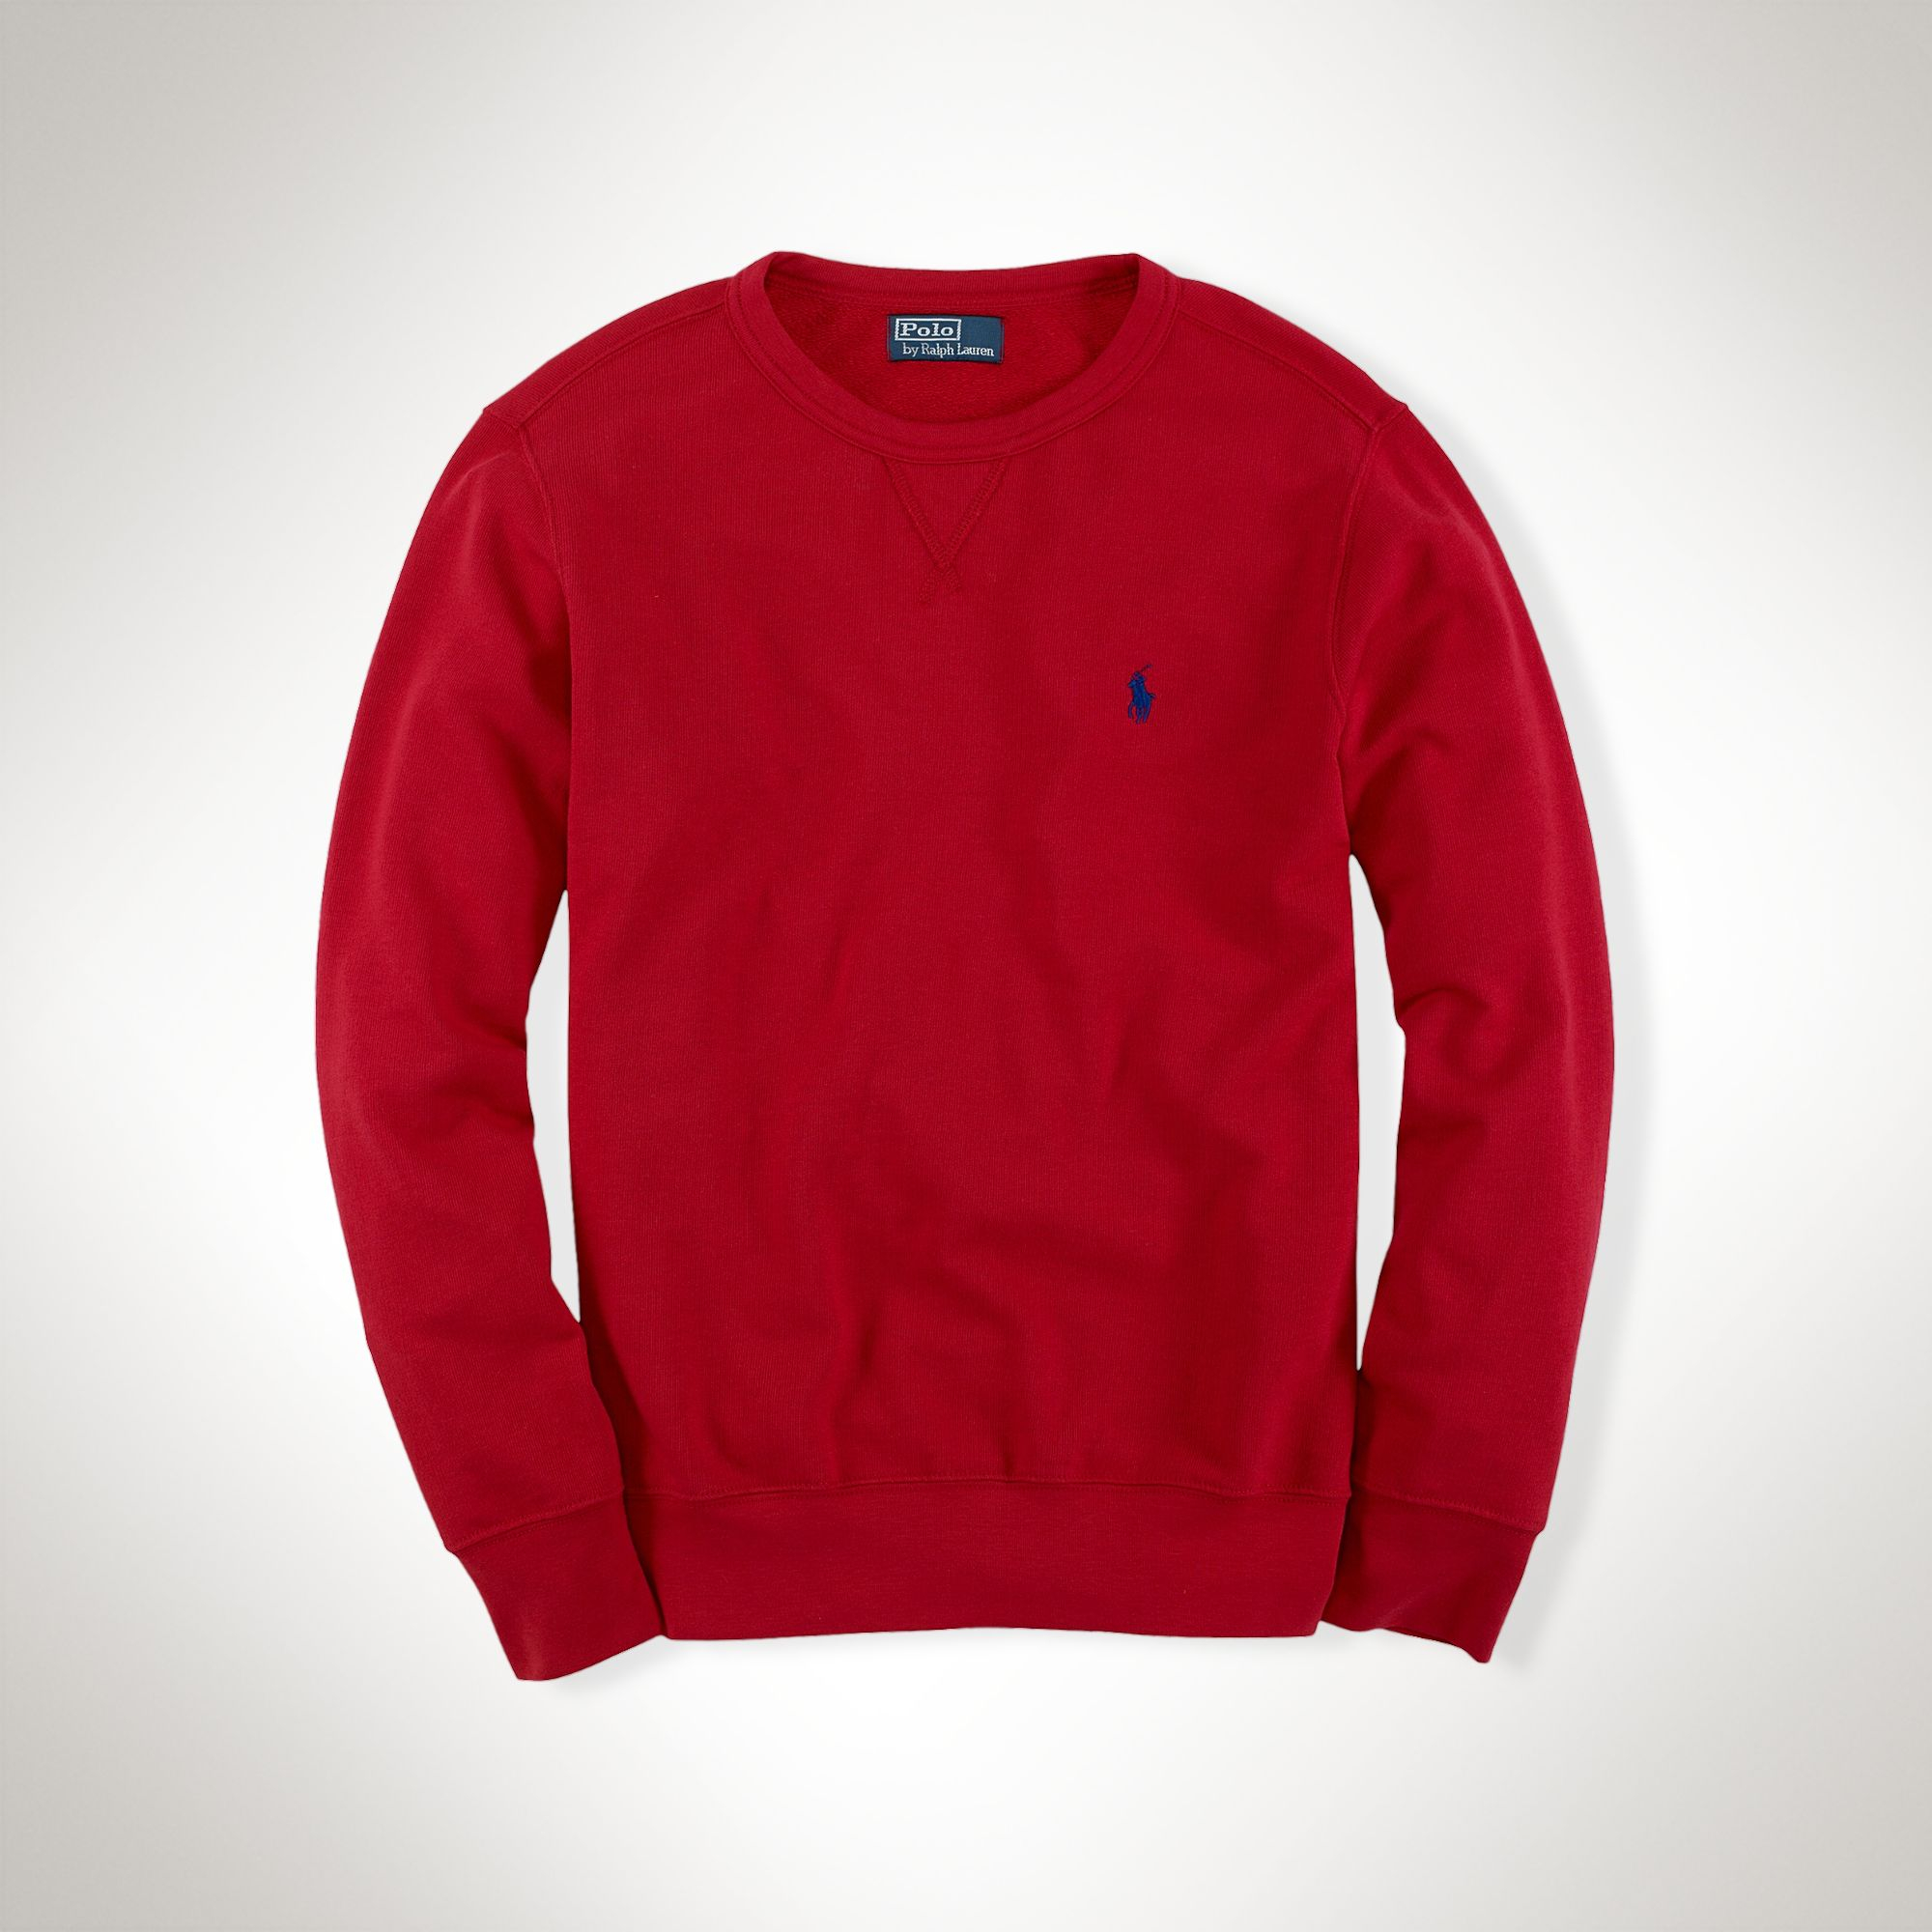 Red Wholesale Lauren Ralph Hoodie 7312d Rugby 3b9e9 Pullover XPkuZOi